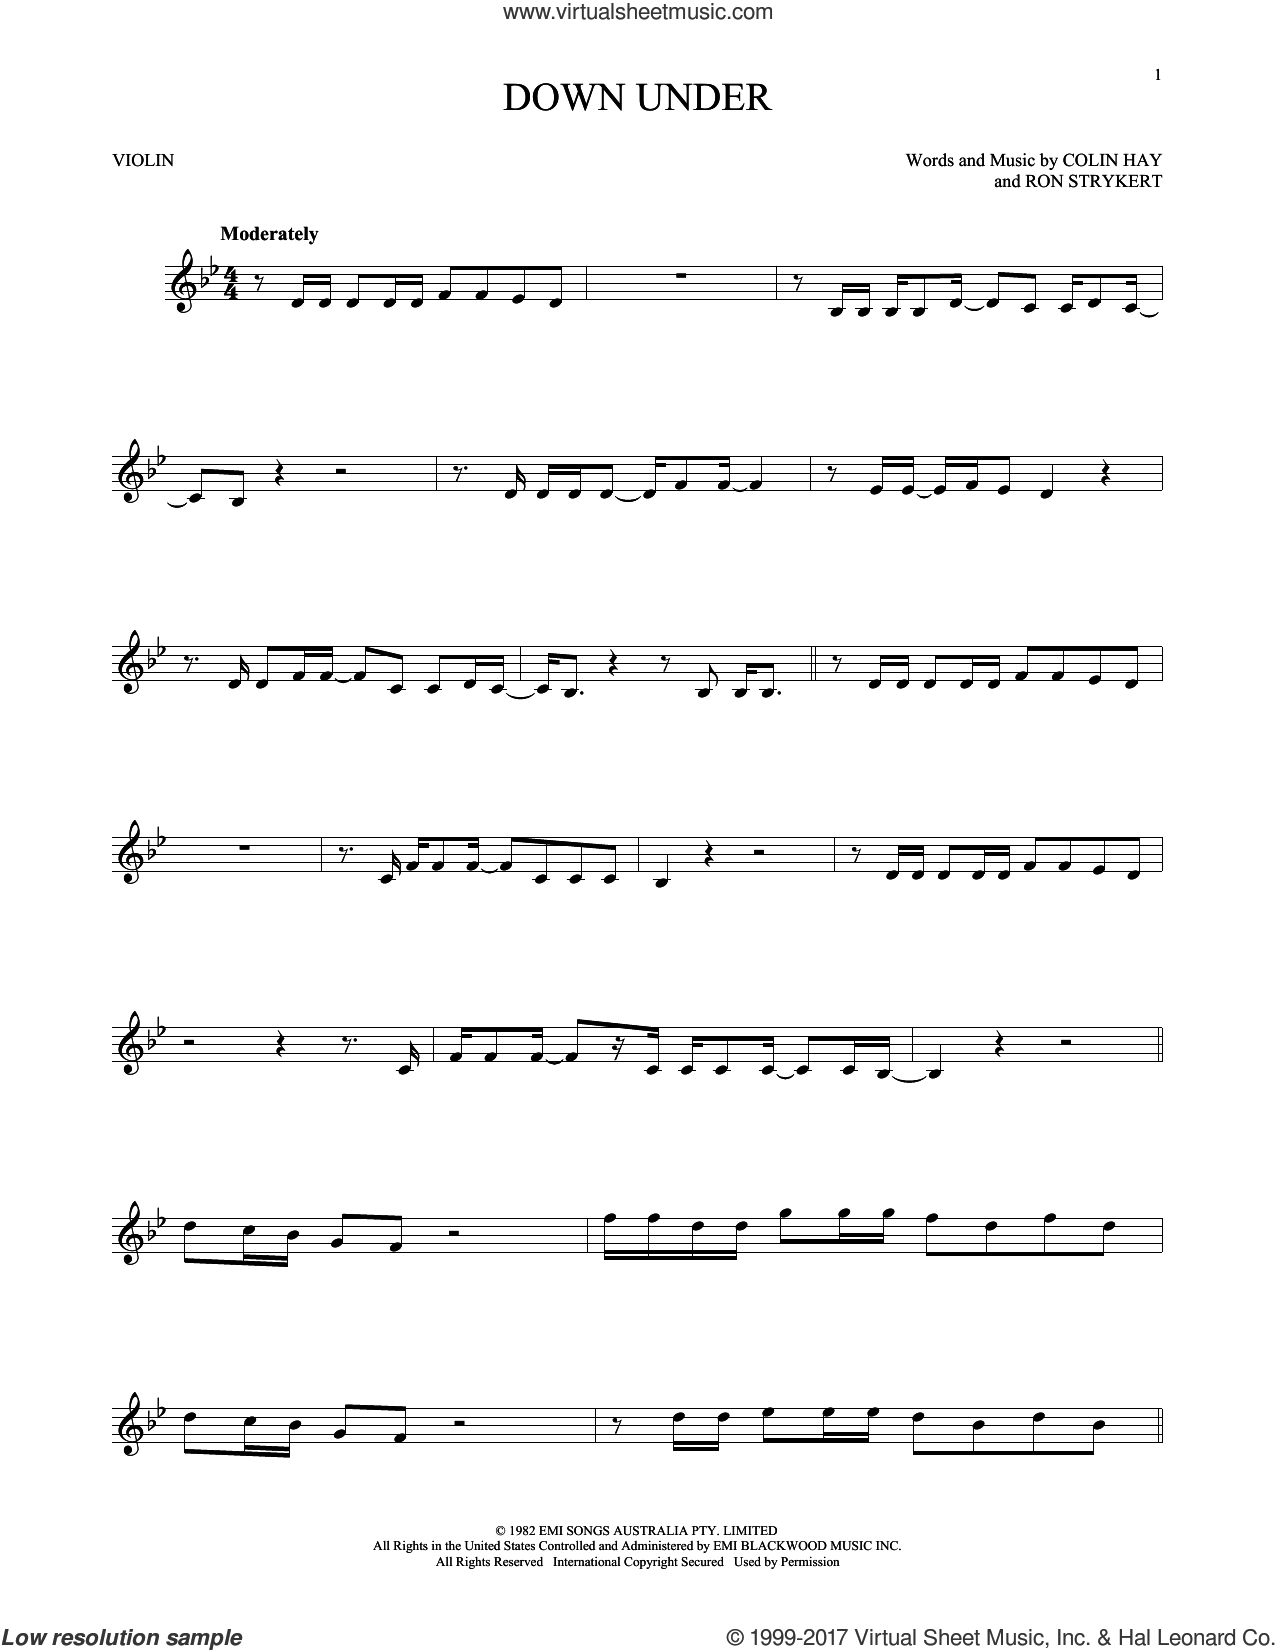 Down Under sheet music for violin solo by Men At Work. Score Image Preview.